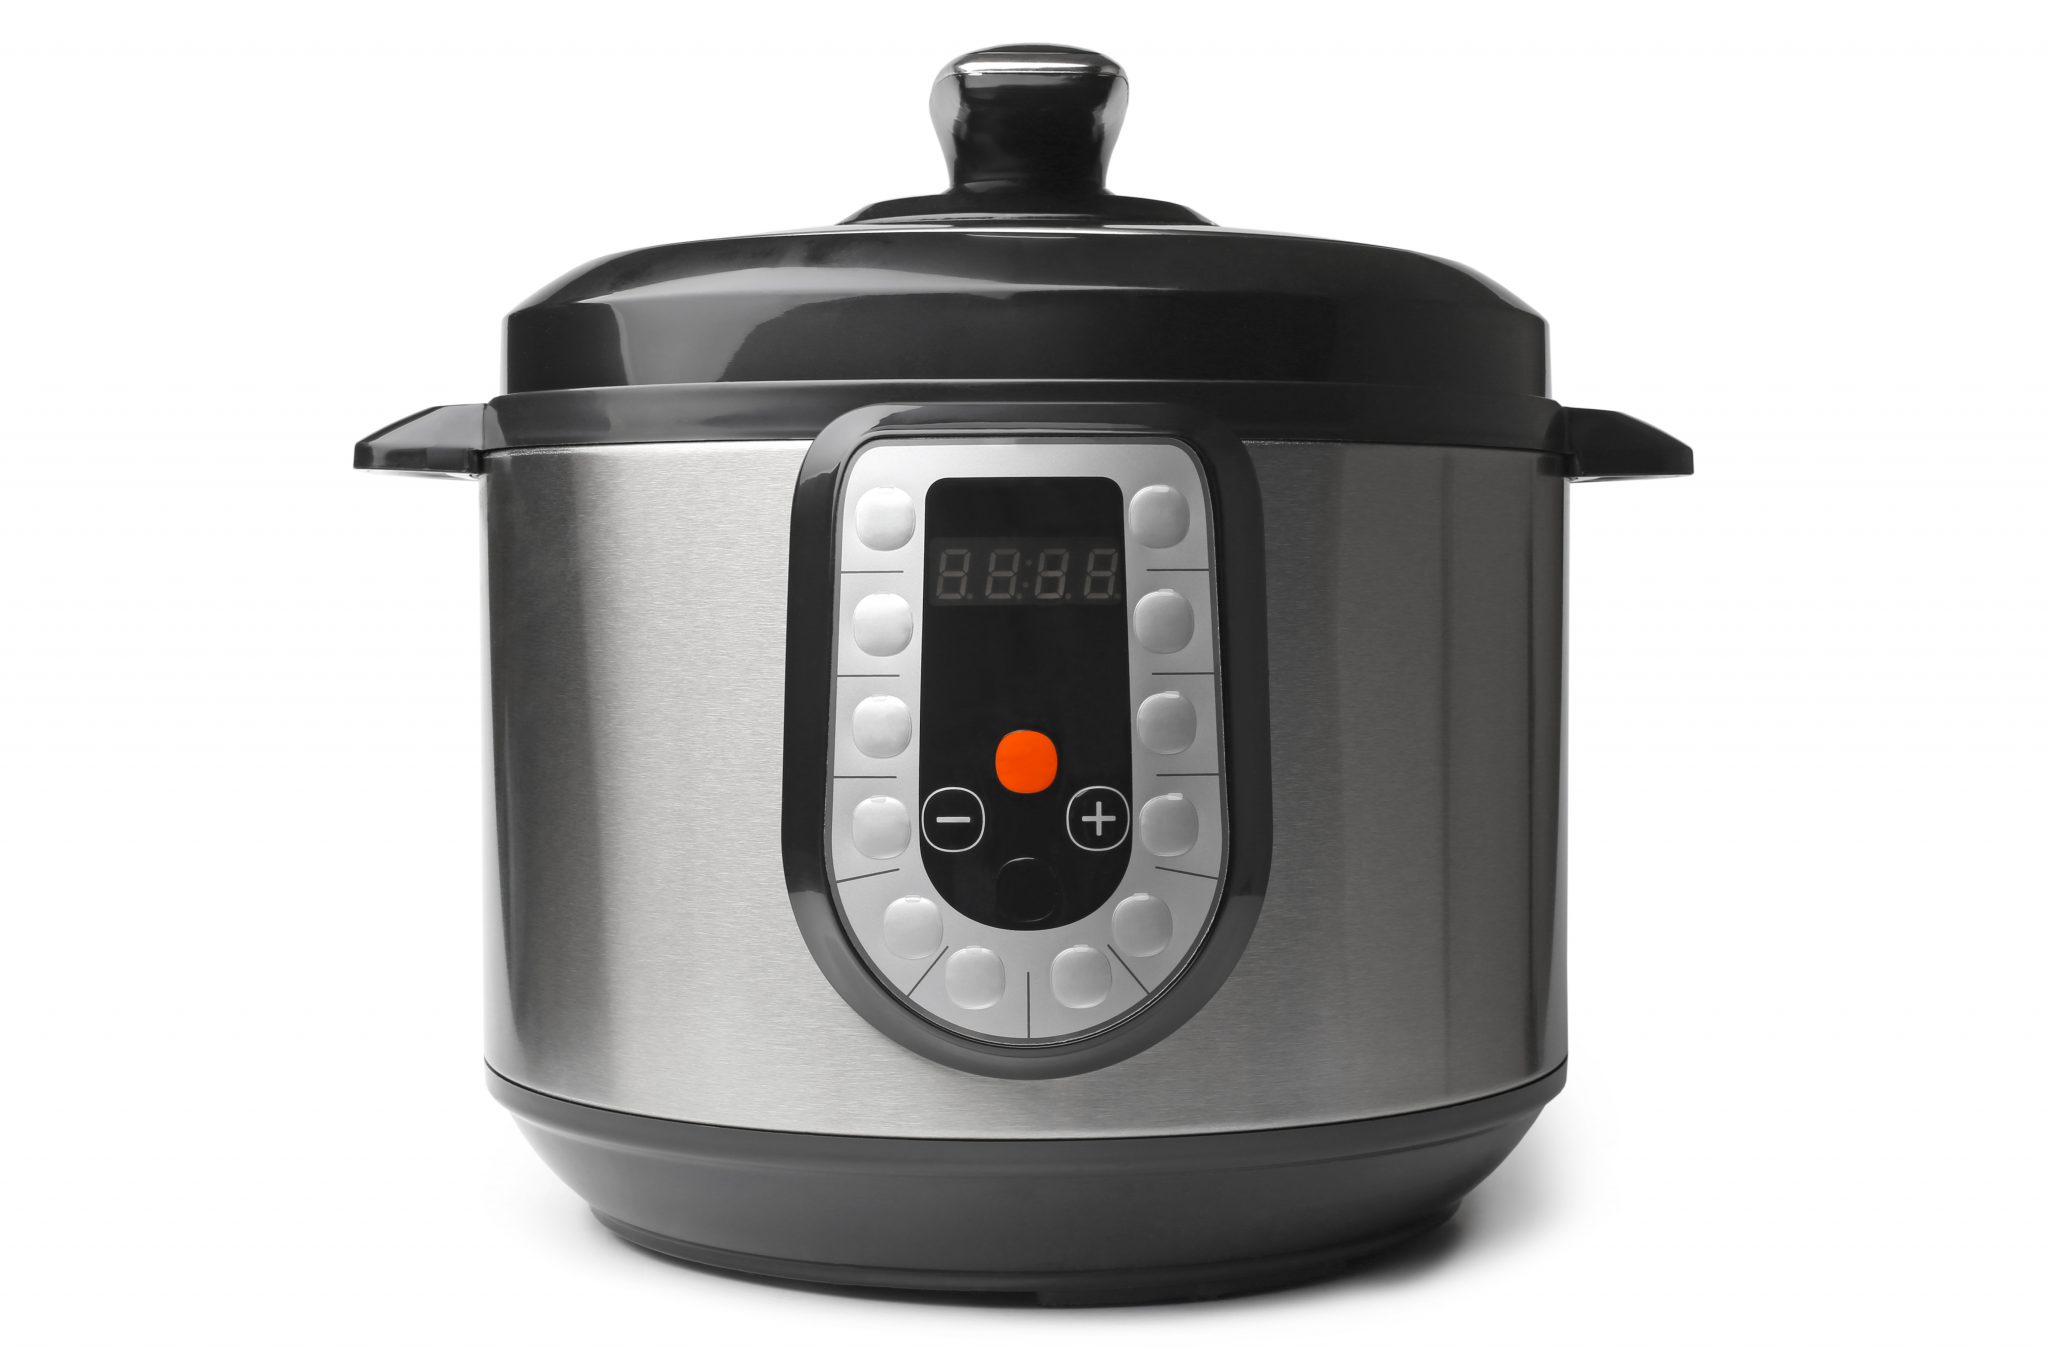 Pressure cooker. Pressure cooking saves time.